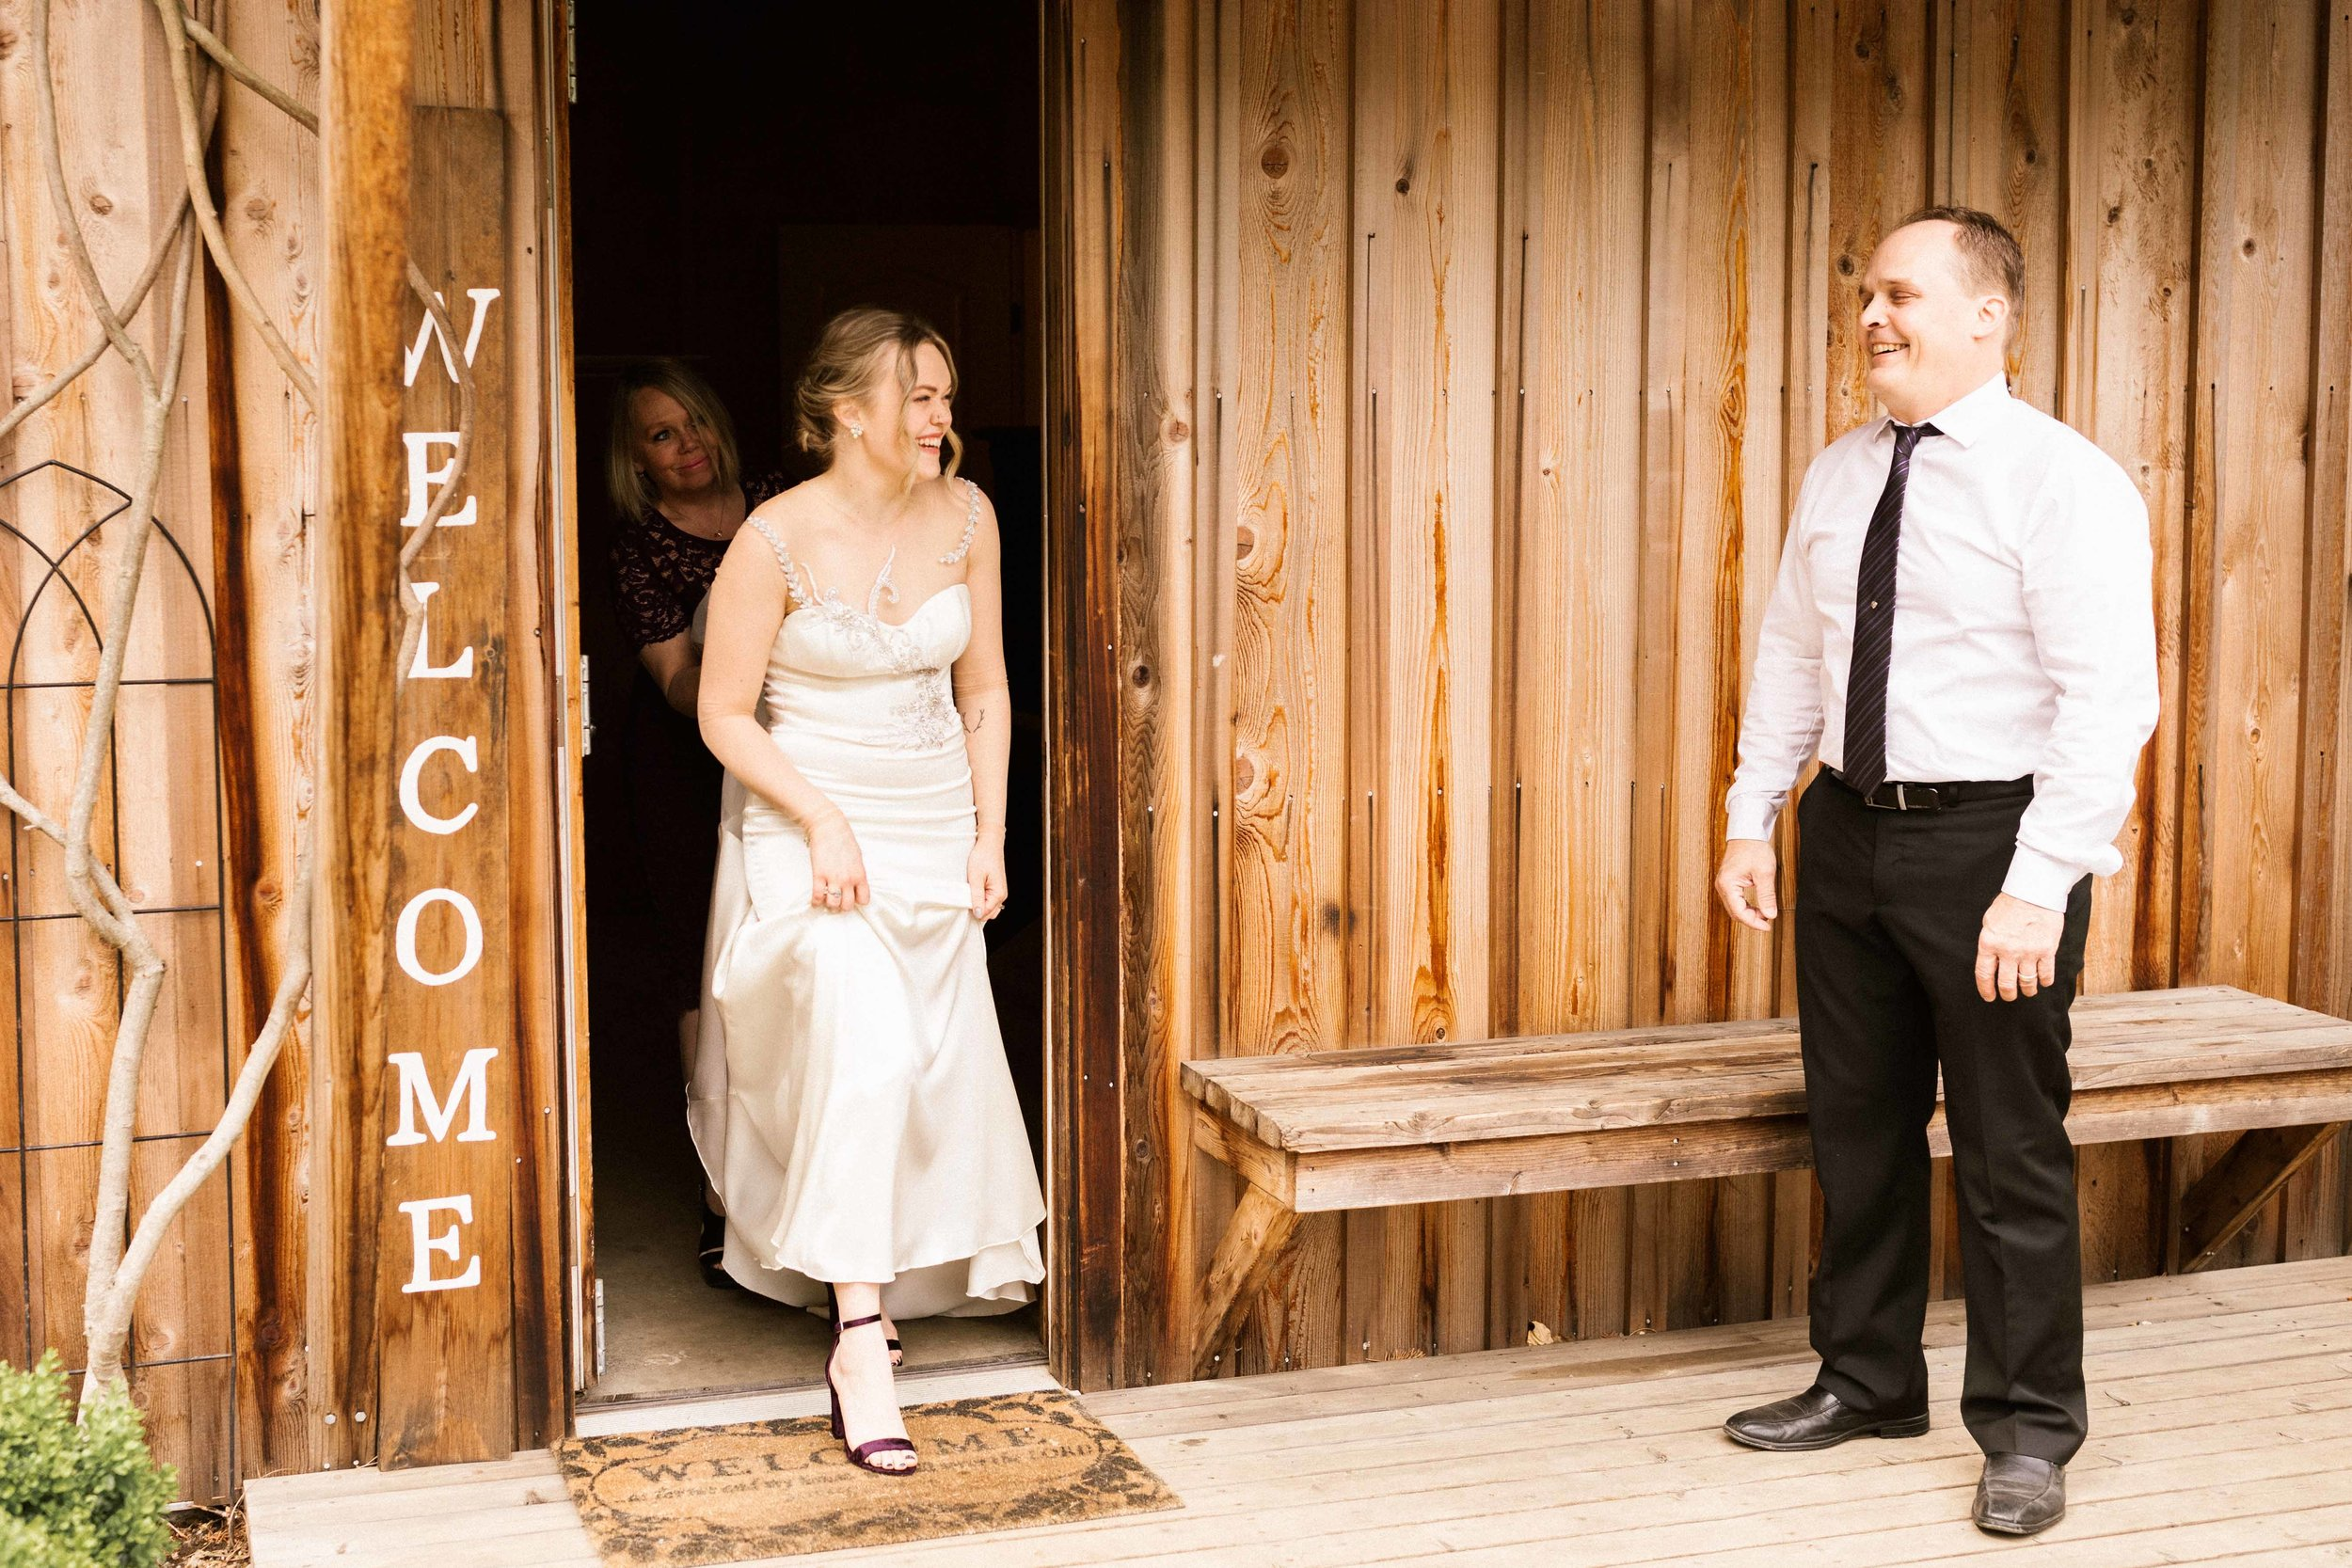 everson-barn-wedding-29.jpg